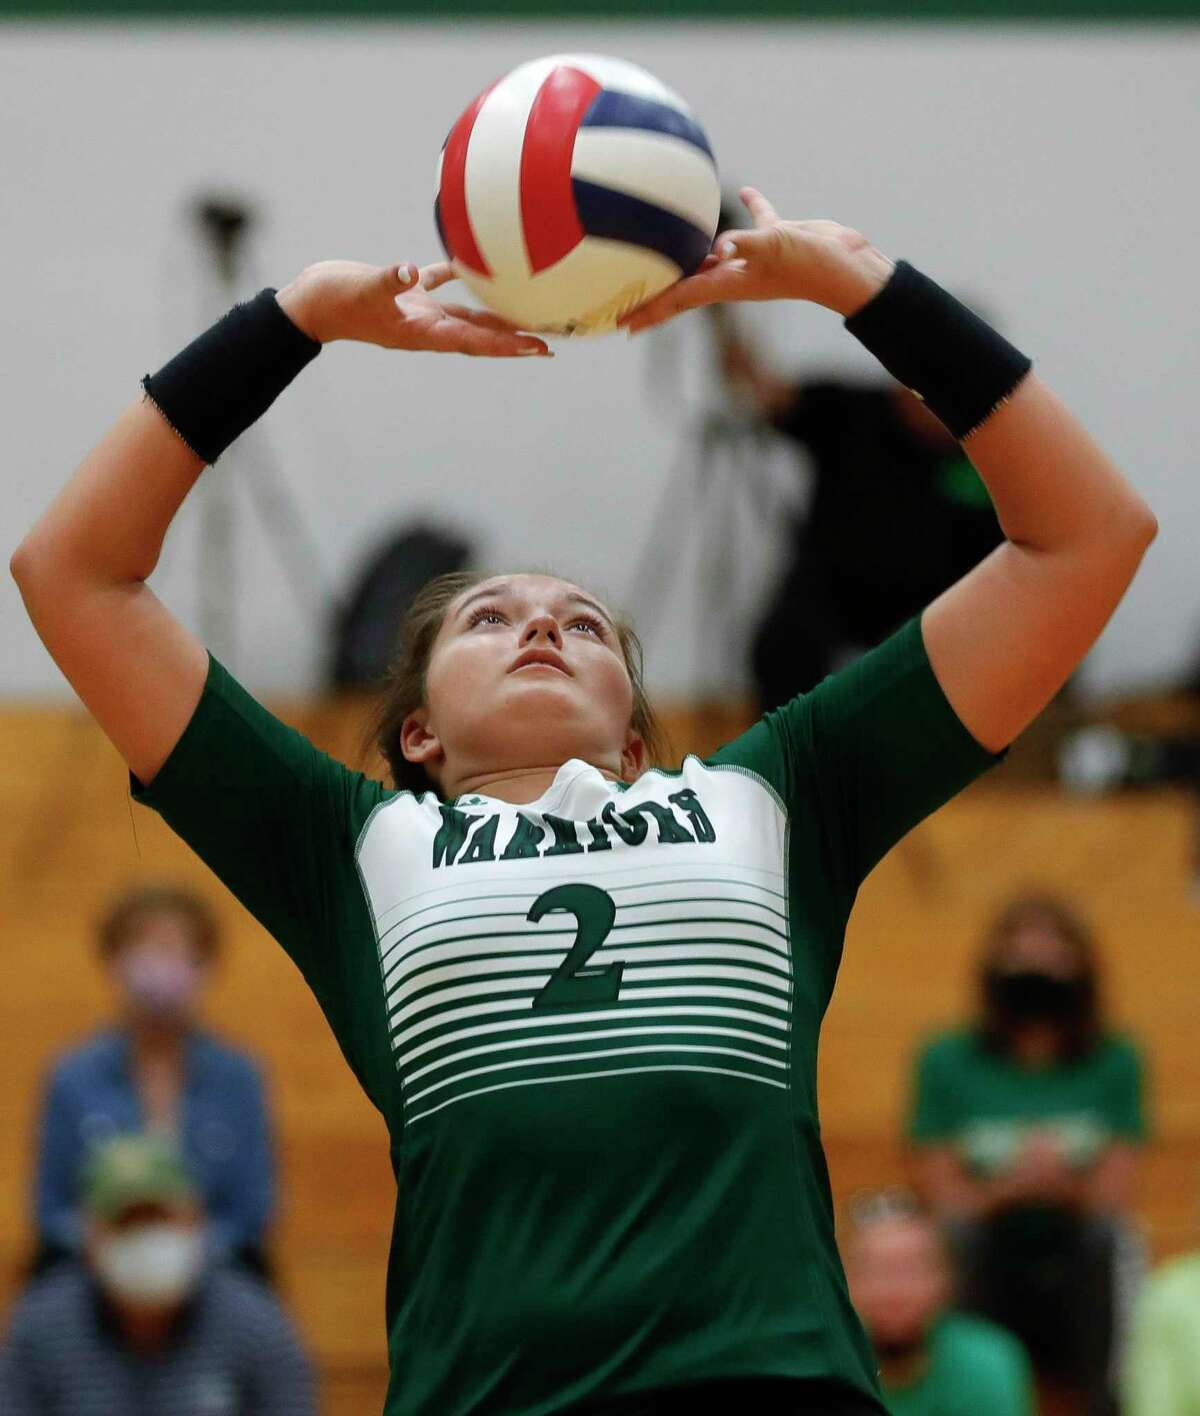 The Woodlands Christian Academy setter Claire Dewine (2) sets the ball during the second set of a TAPPS high school volleyball match at The Woodlands Christian Academy, Tuesday, Sept. 29, 2020, in The Woodlands.